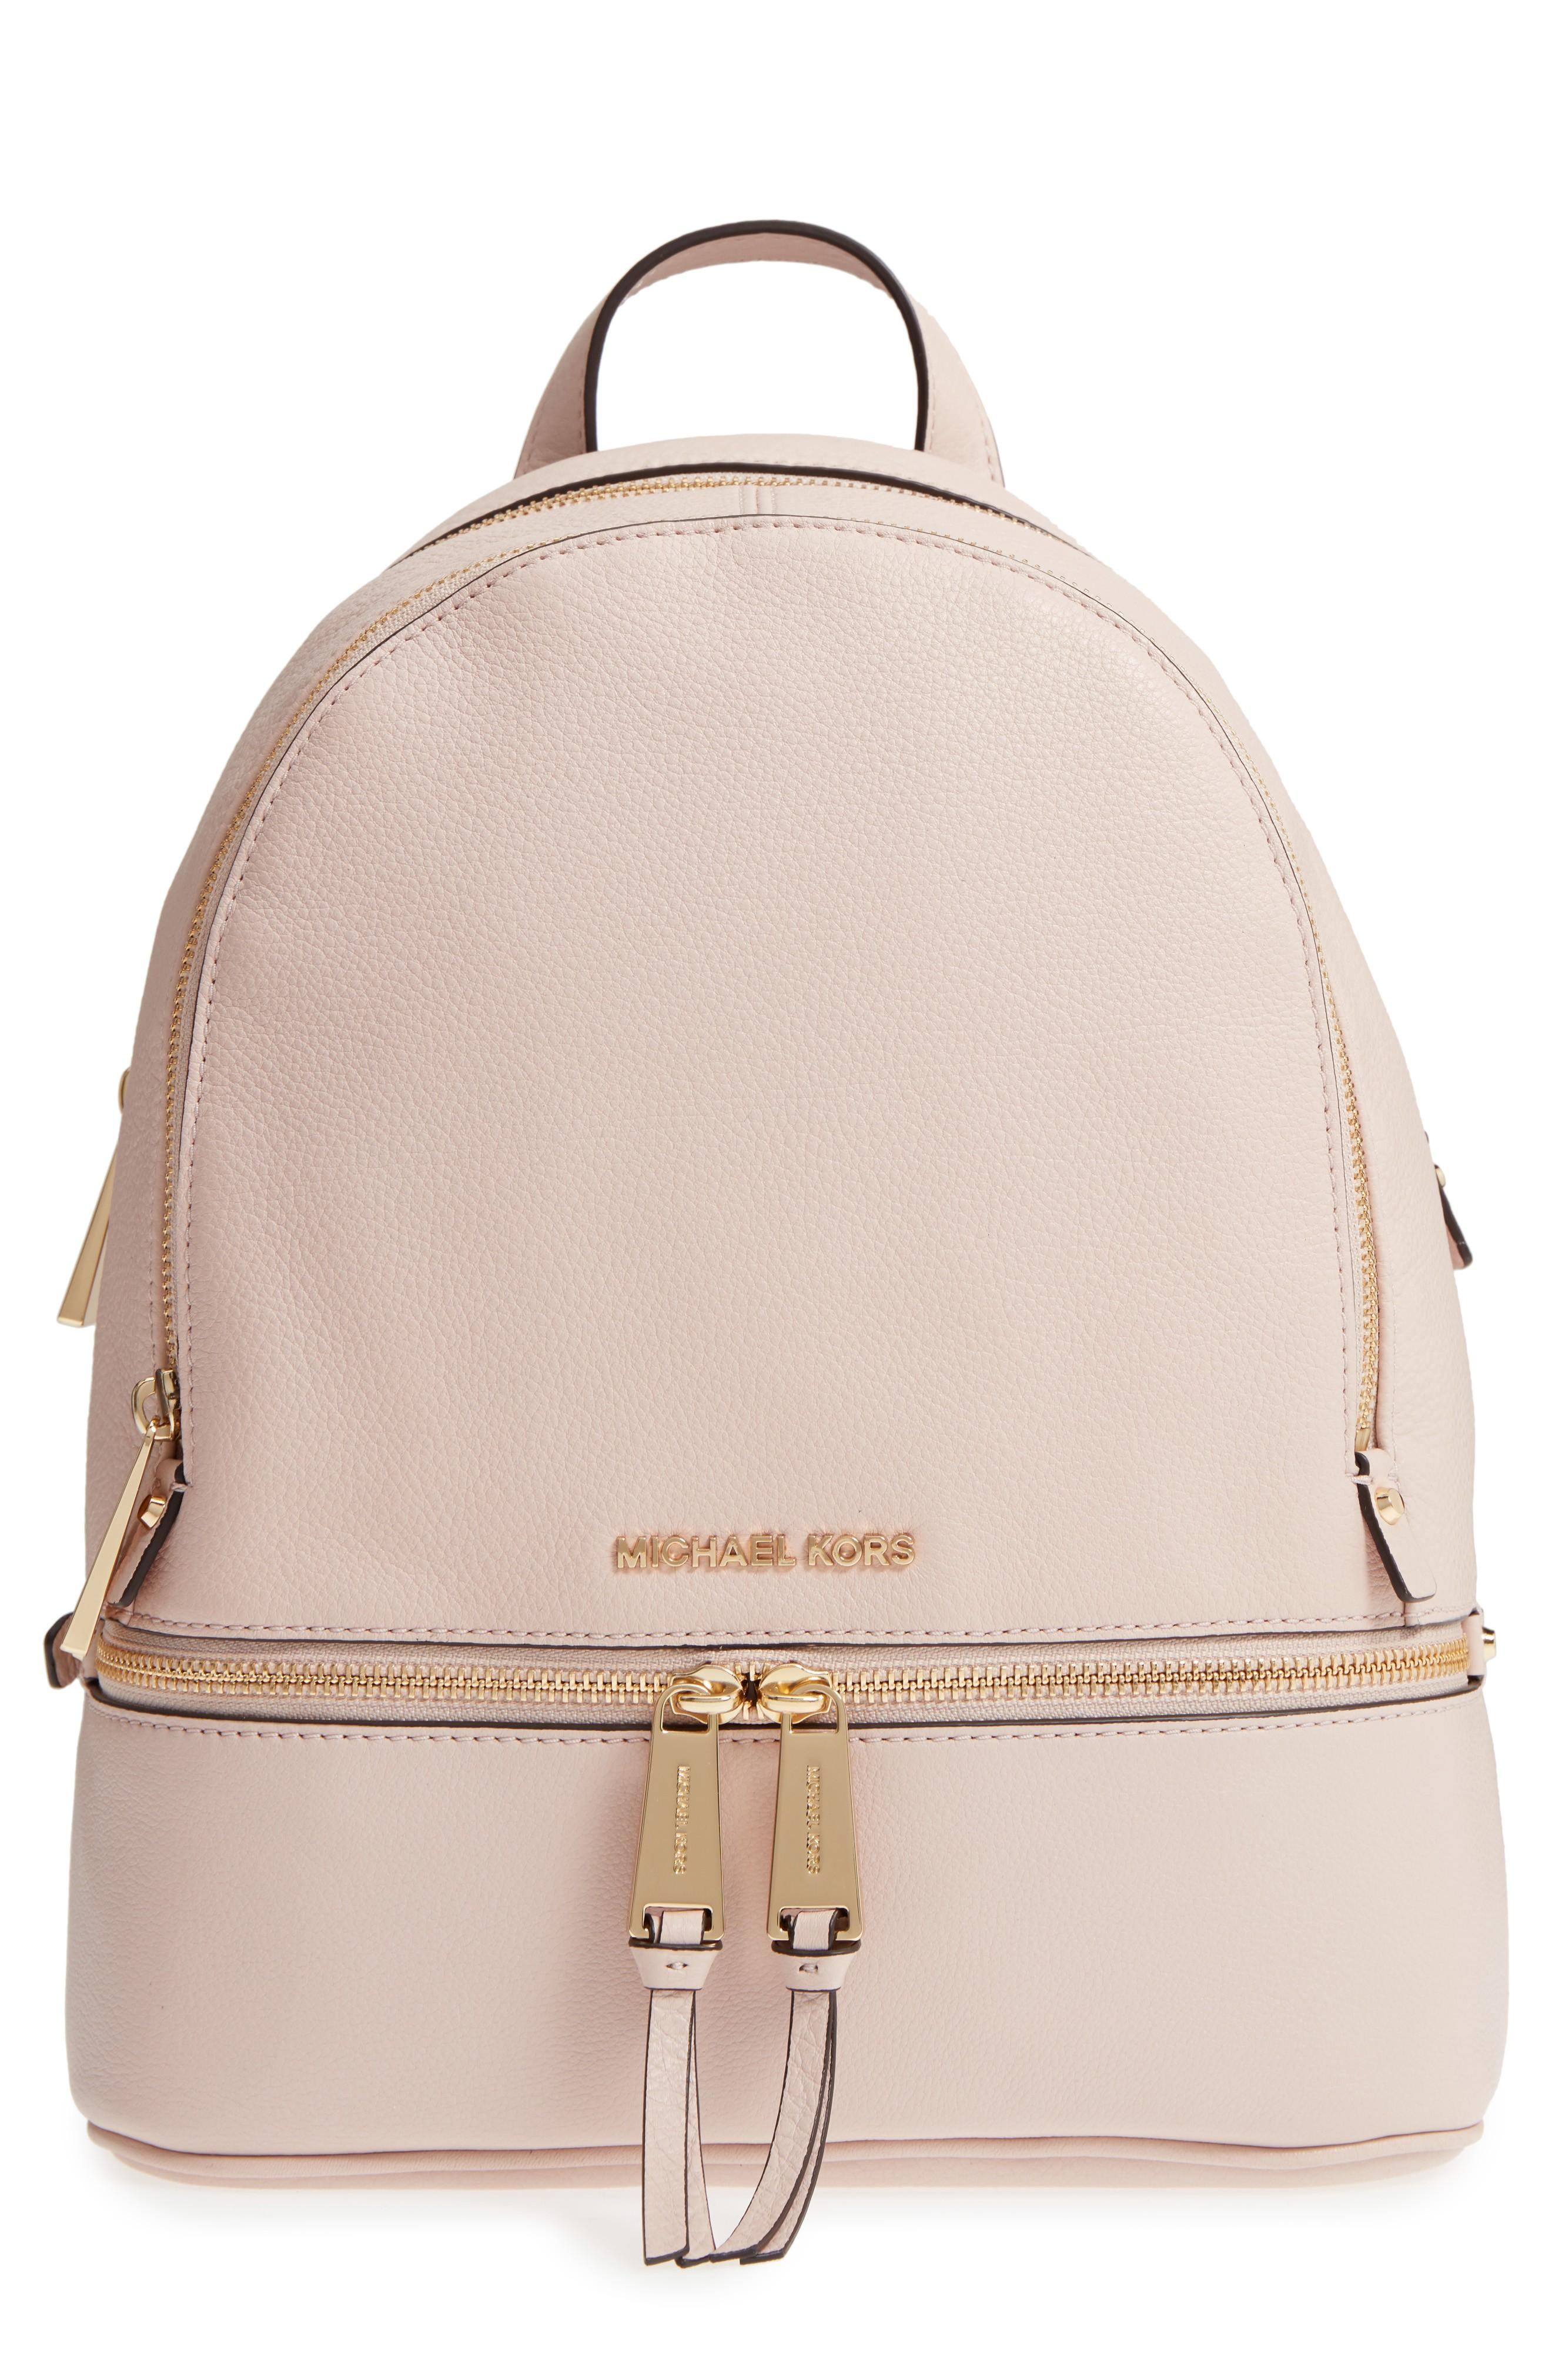 fad98ee89295 Michael Michael Kors 'Extra Small Rhea Zip' Leather Backpack - Pink In Soft  Pink